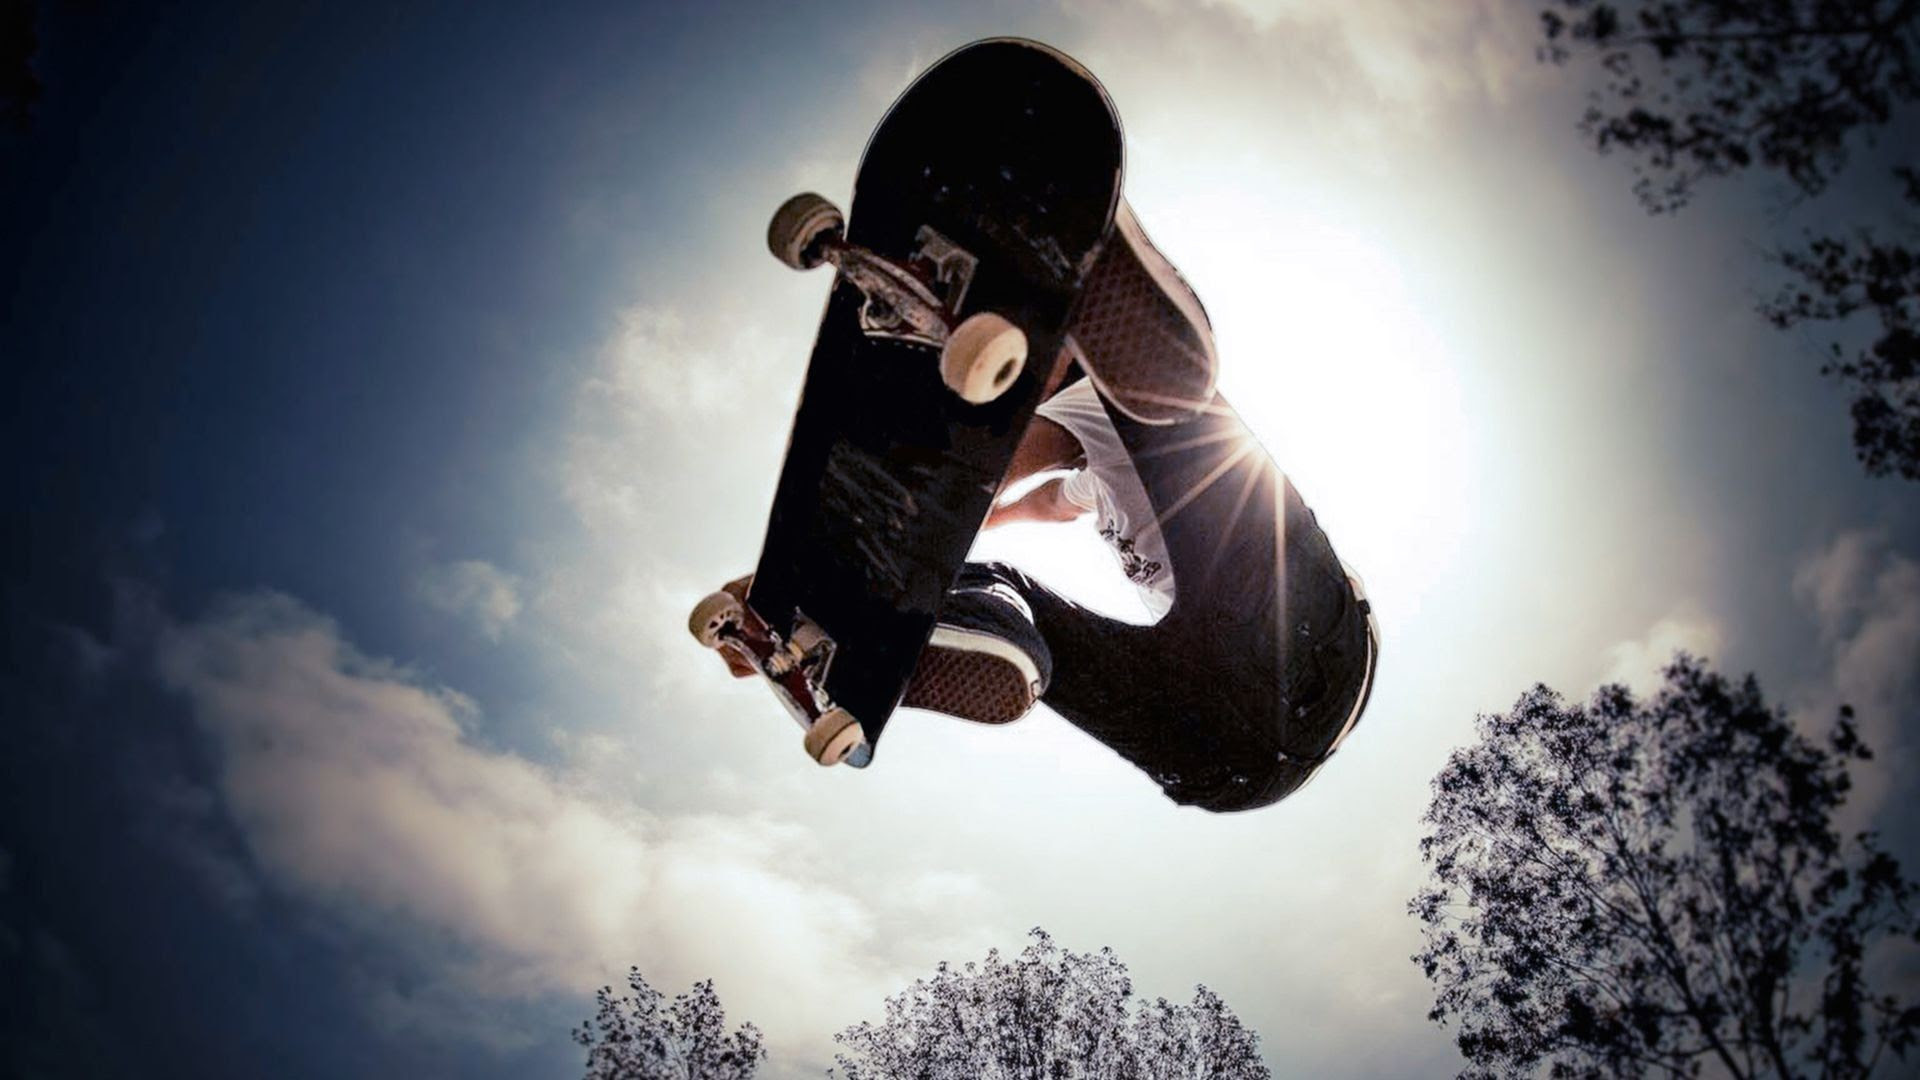 Cool Skateboarding Wallpapers (63+ images)